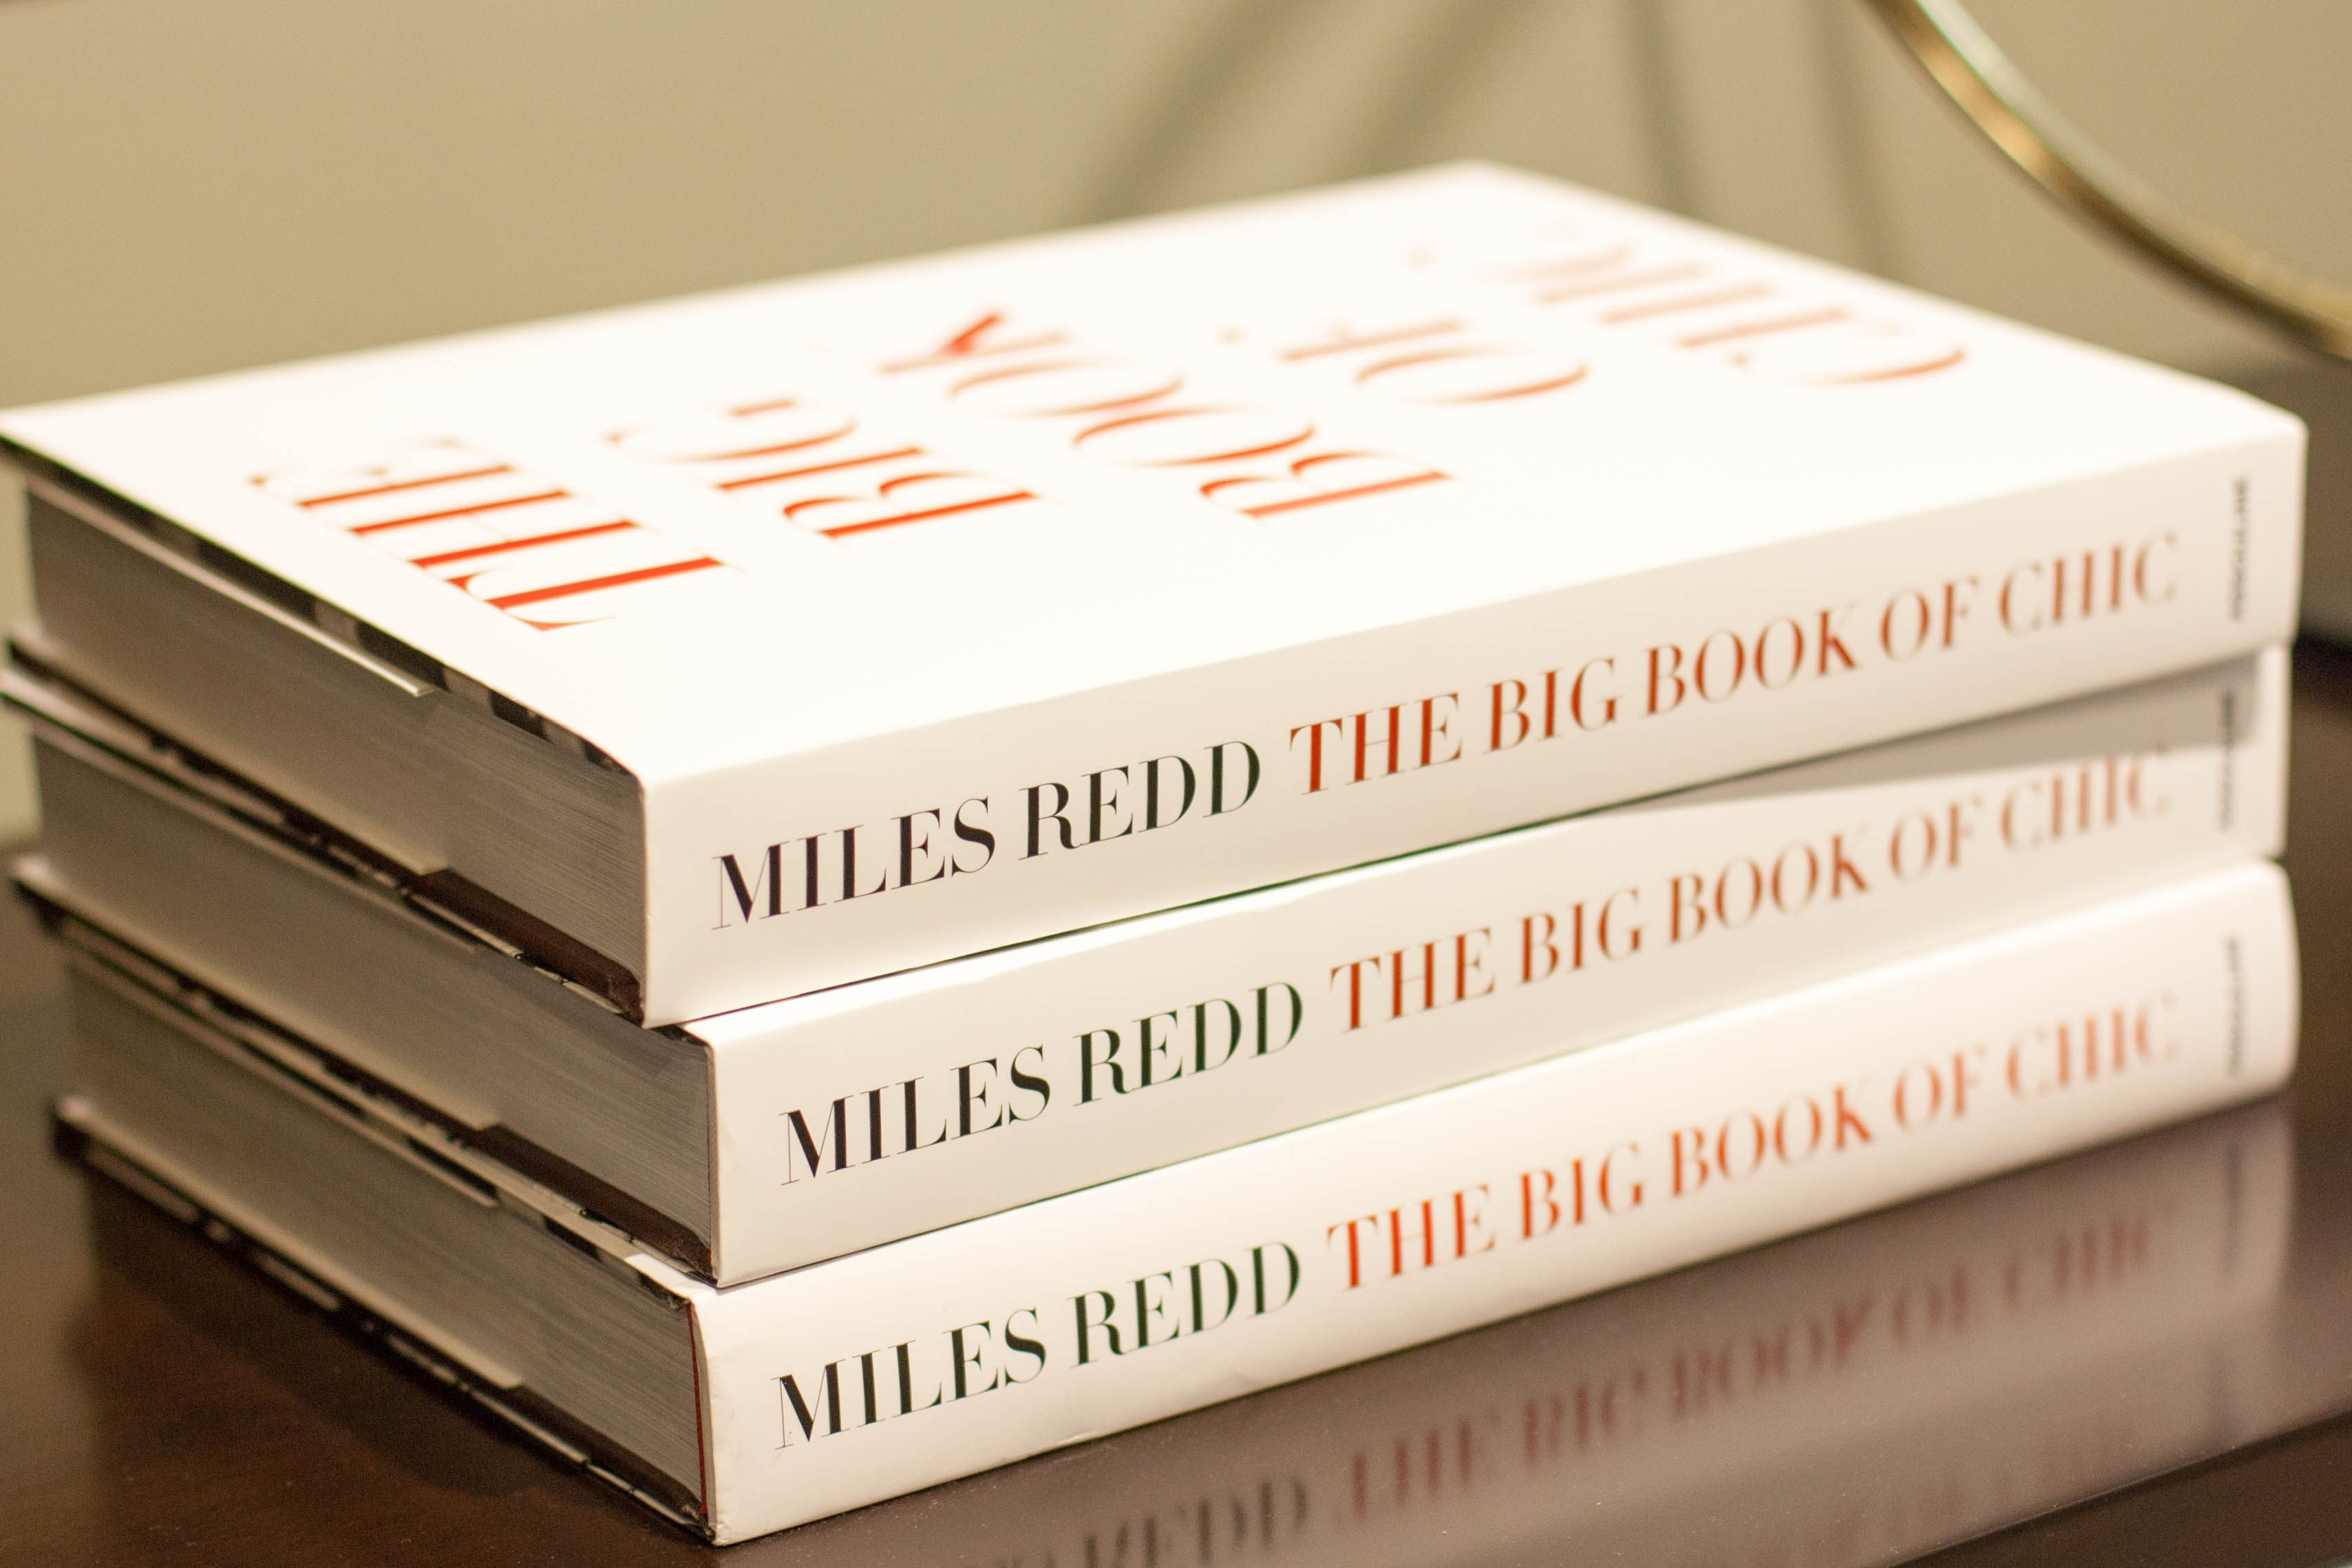 Miles Rudd The Big Book Of Chic Coffee Table Book Chic Coffee Table Buying Furniture Big Book